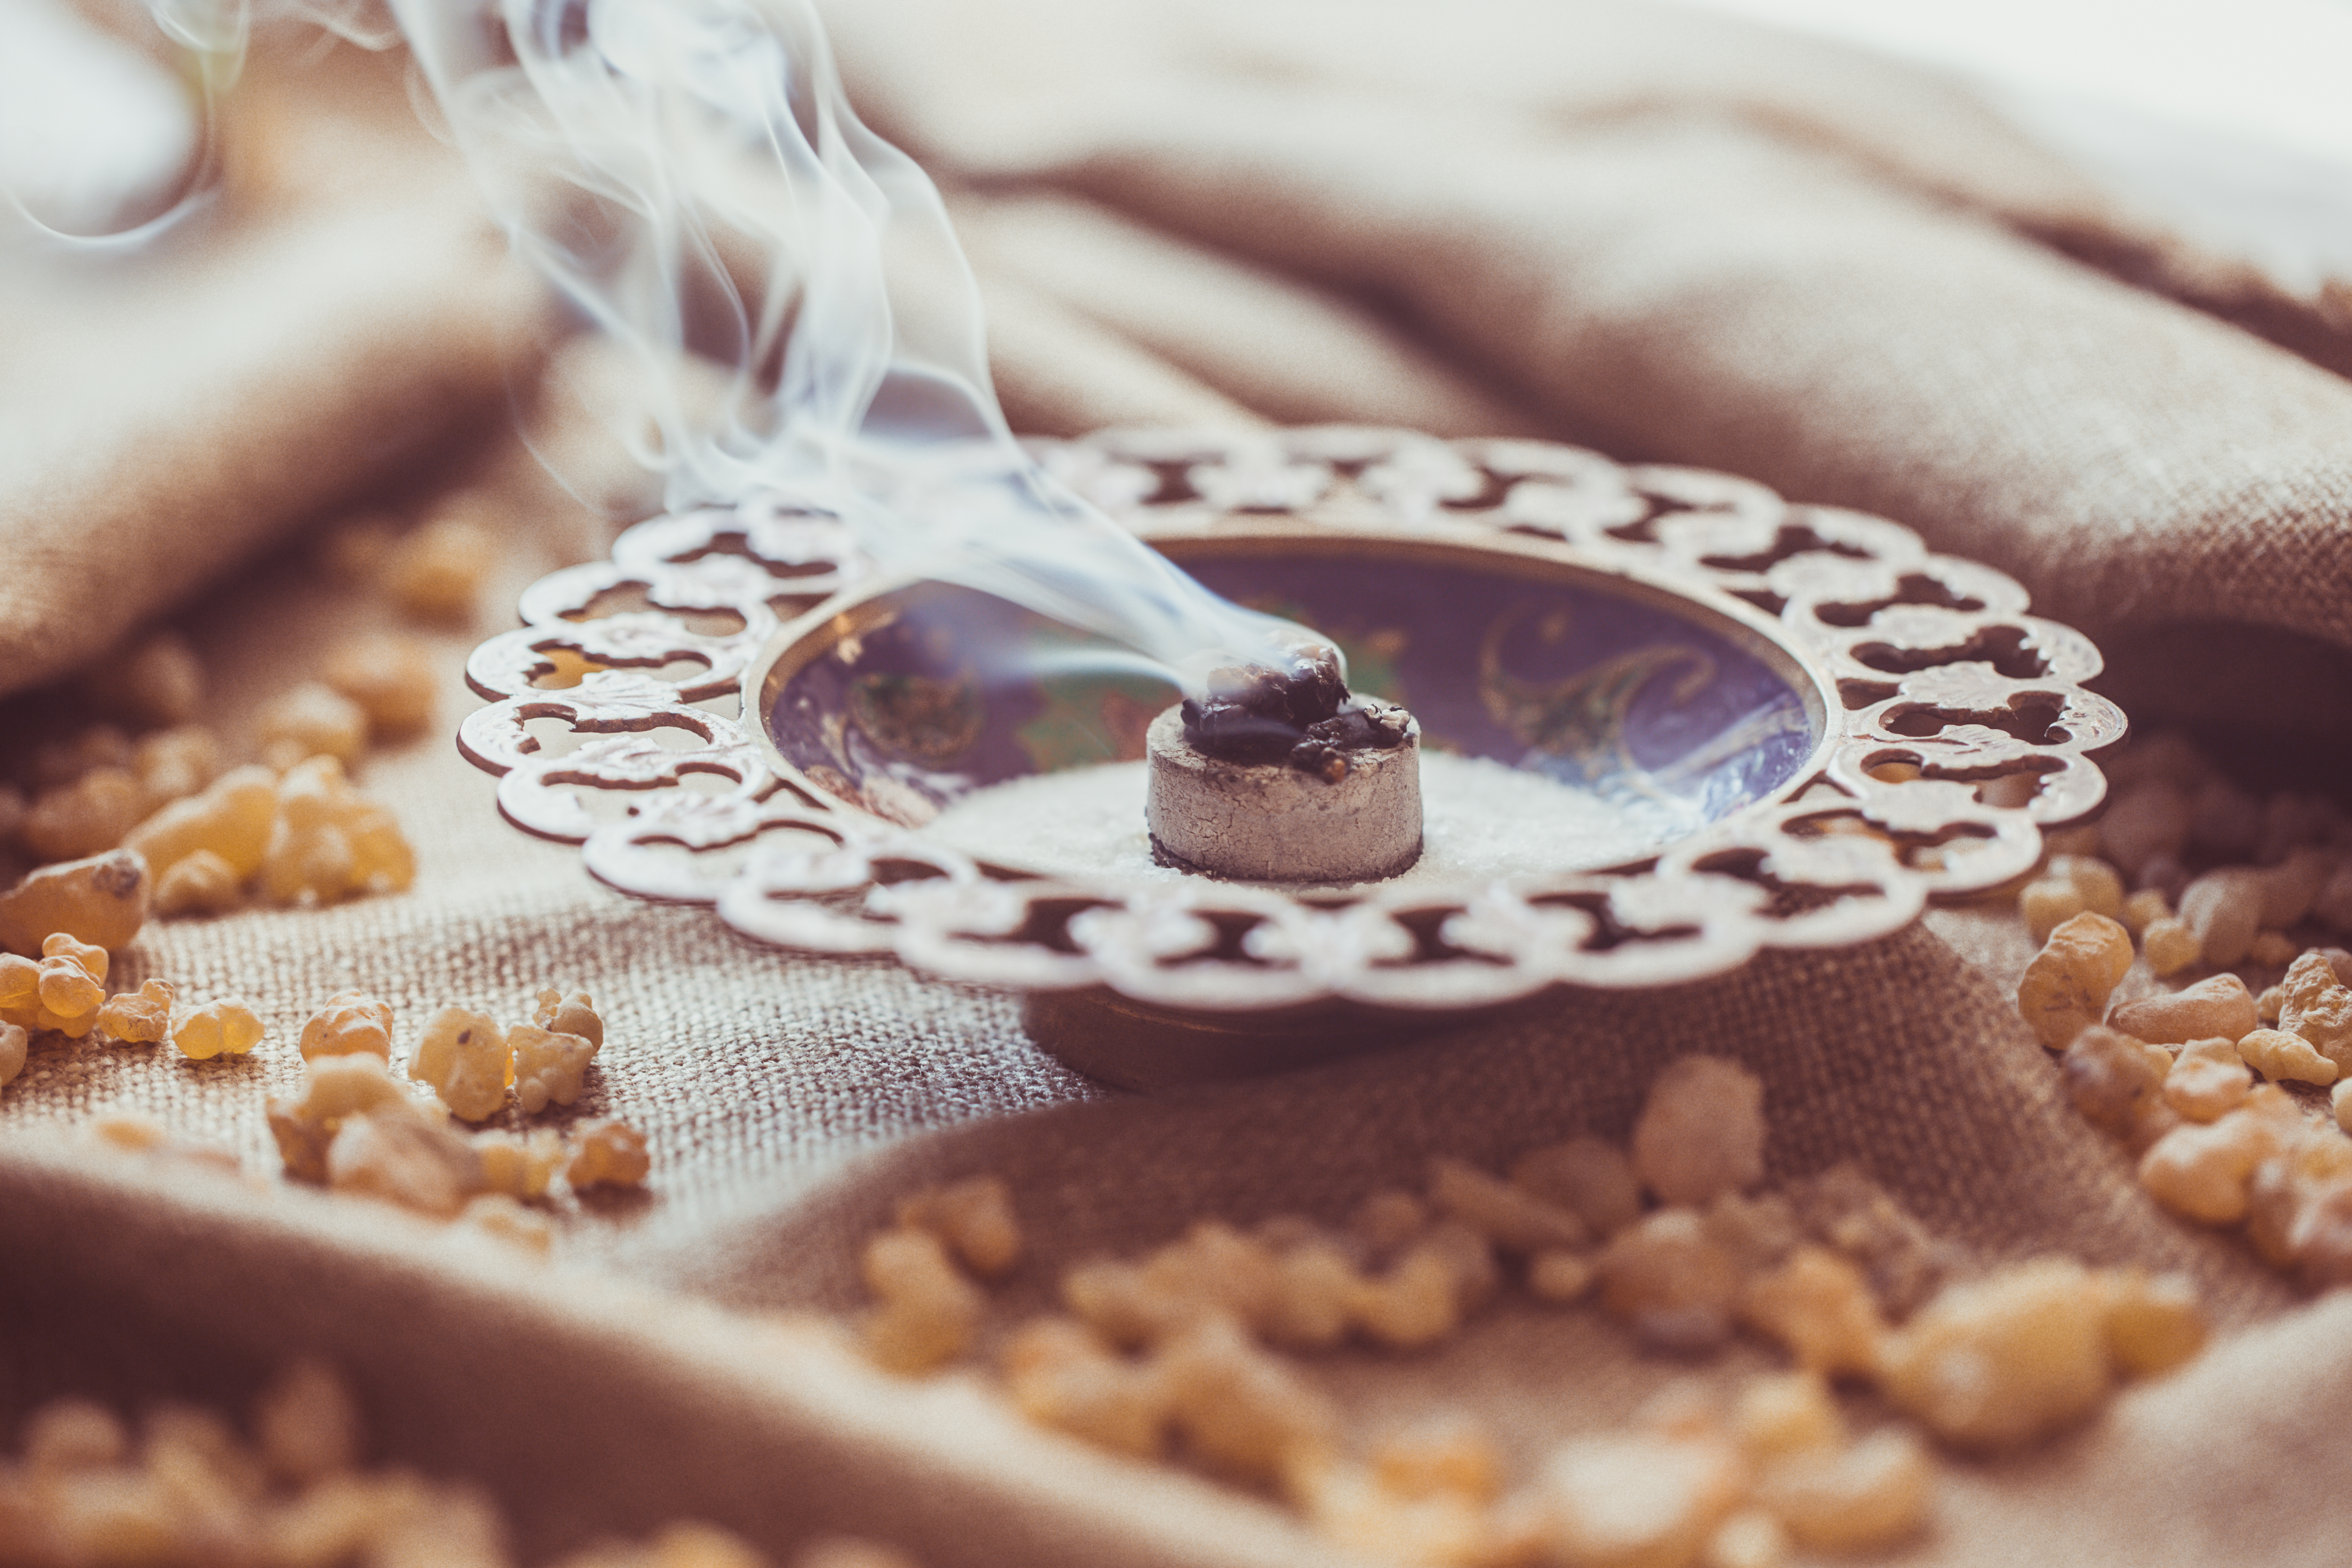 Frankincense burning on a hot coal